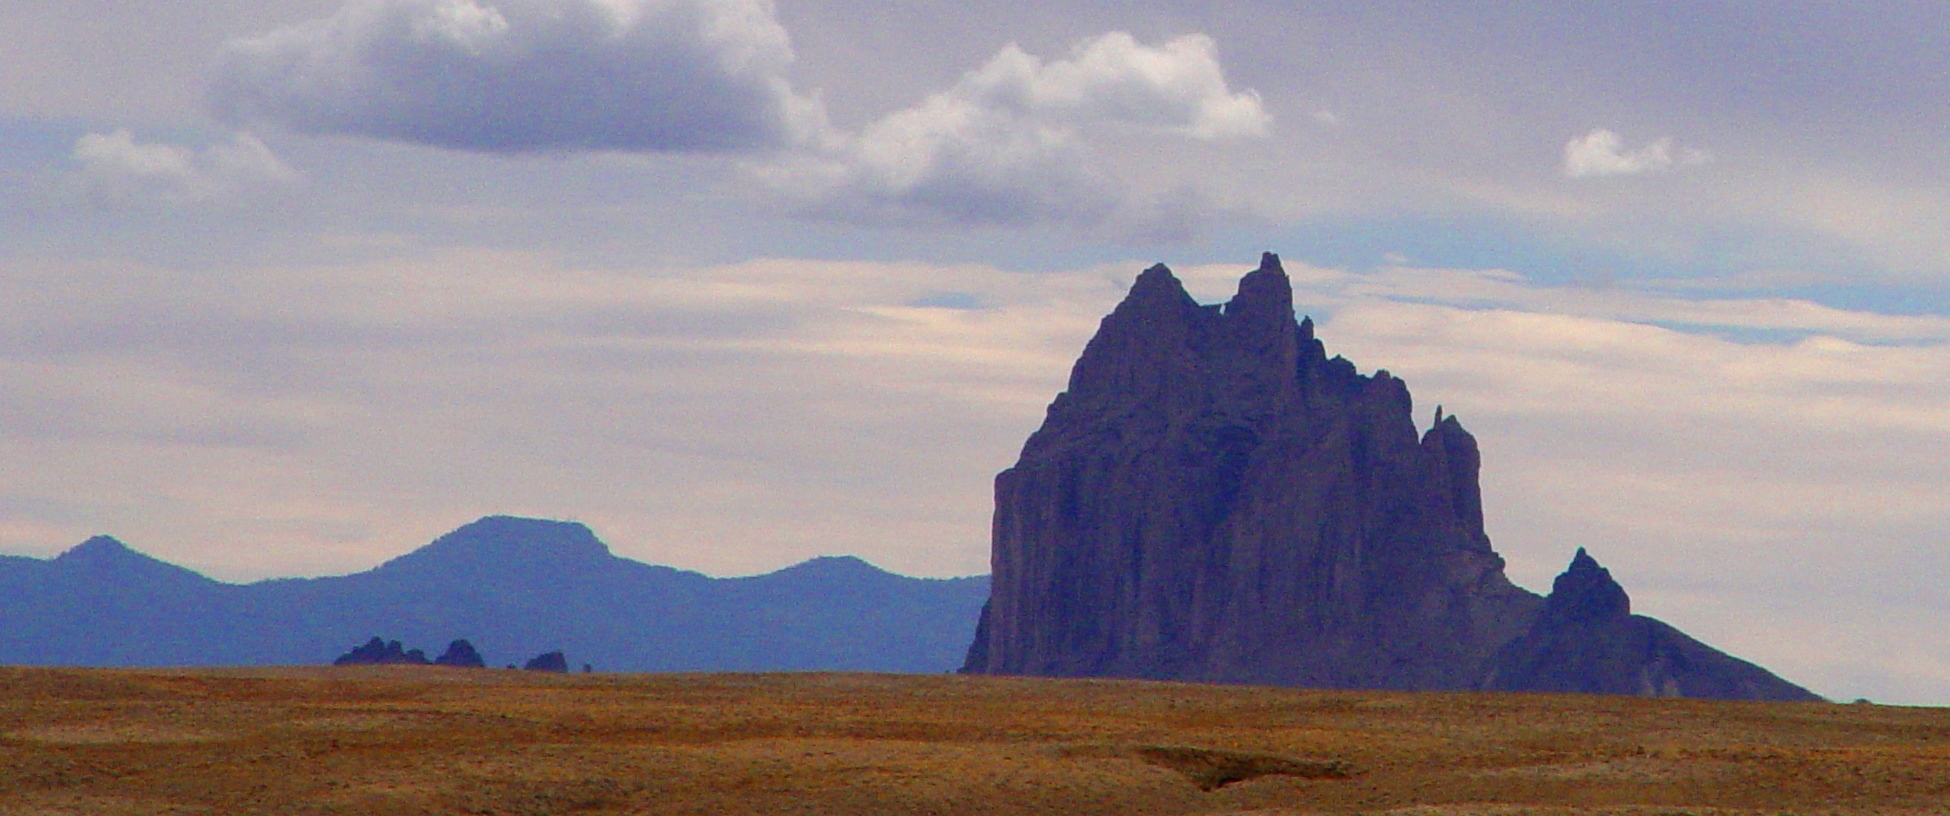 Shiprock, New Mexico, a volcanic neck